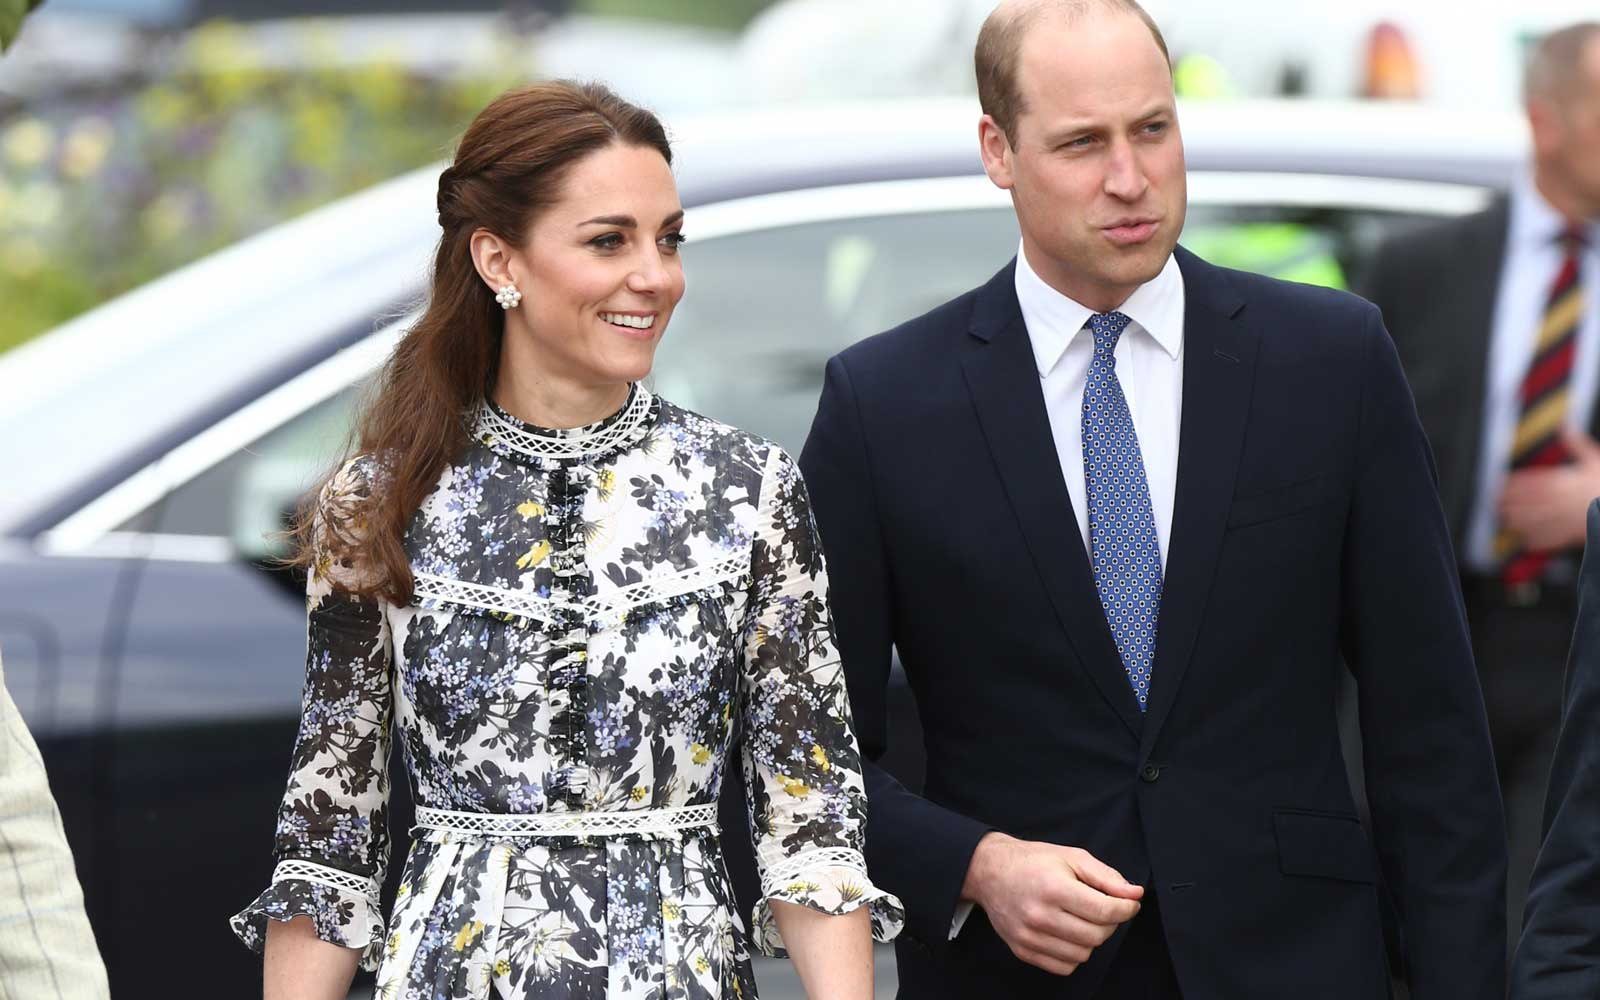 Everything We Know About Prince William and Kate Middleton's $34,000-a-week Island Vacation Rental